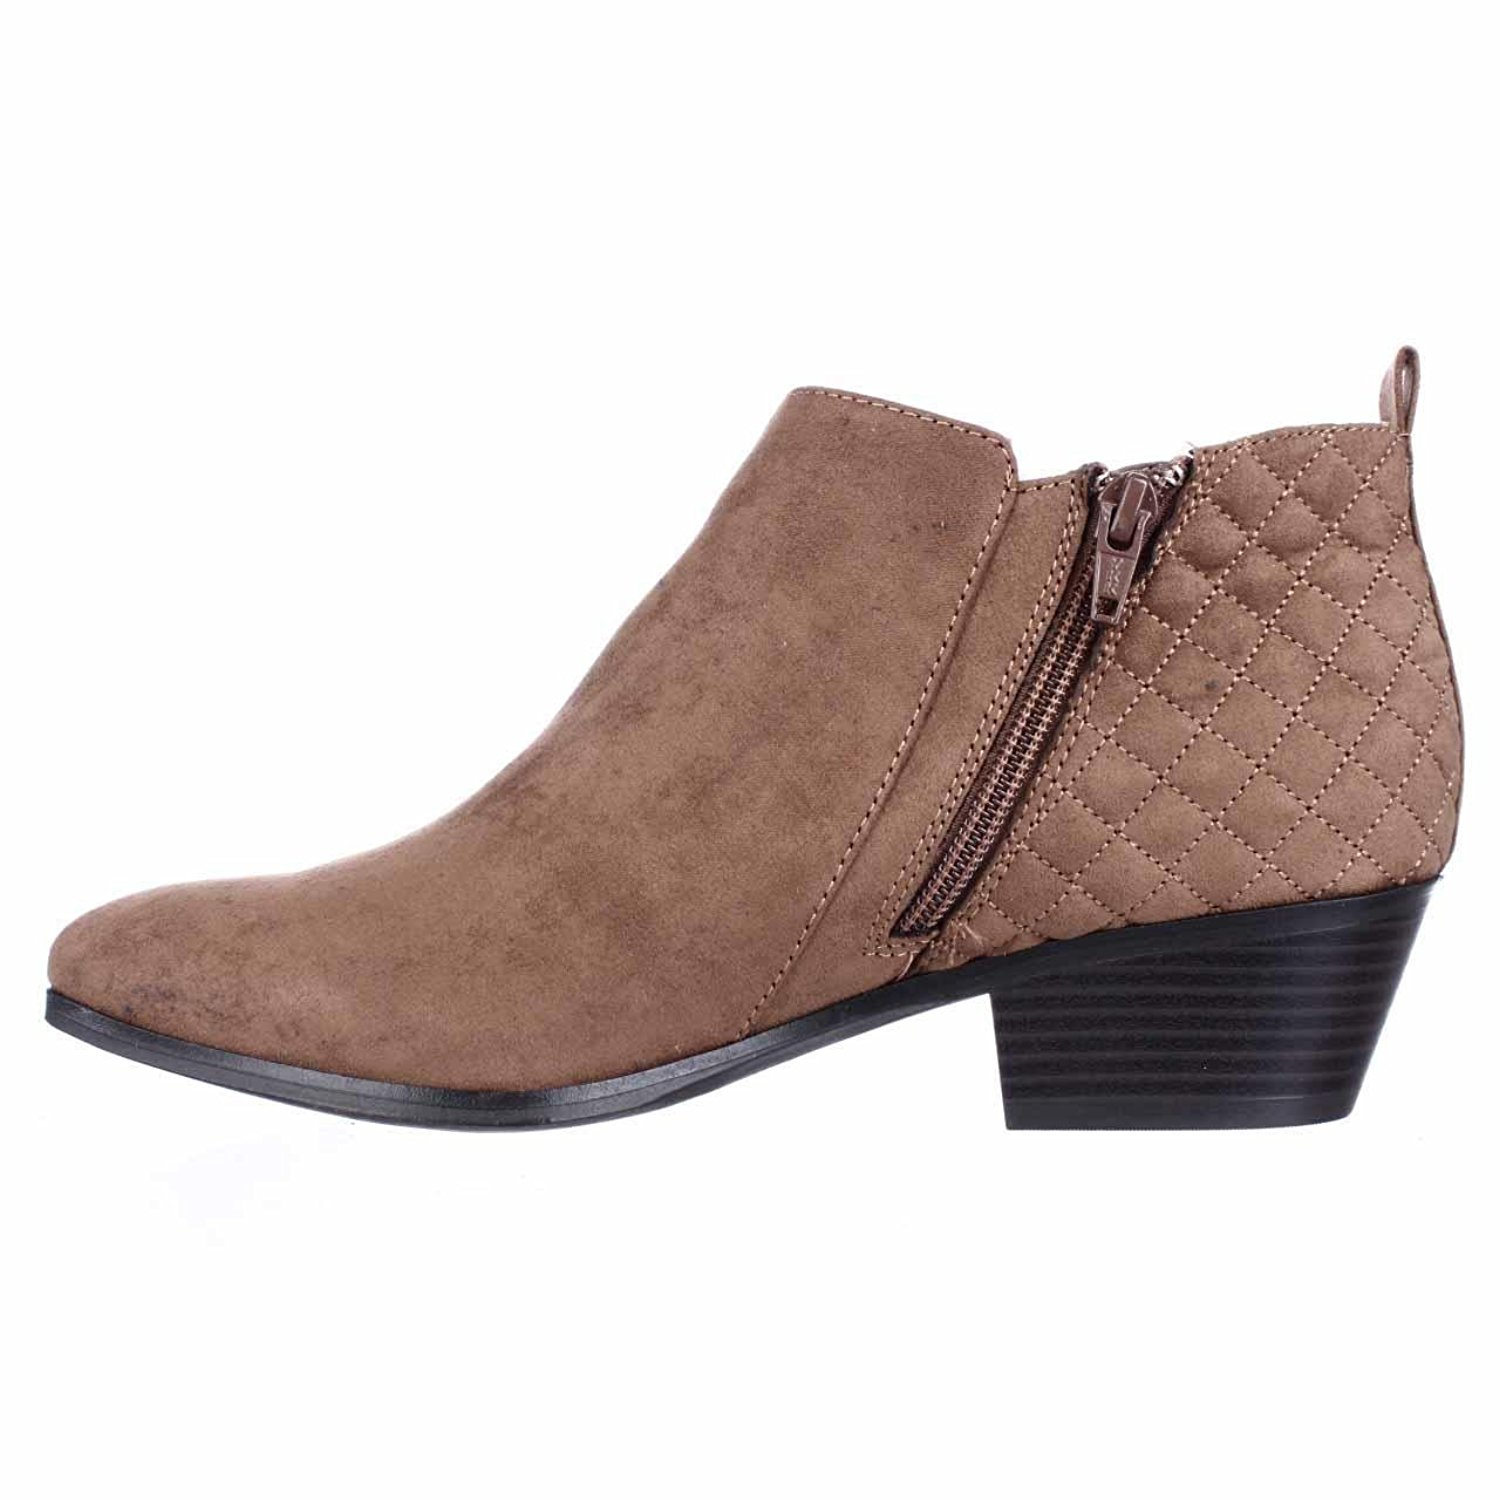 Womens Wessley Closed Toe Ankle Fashion Boots